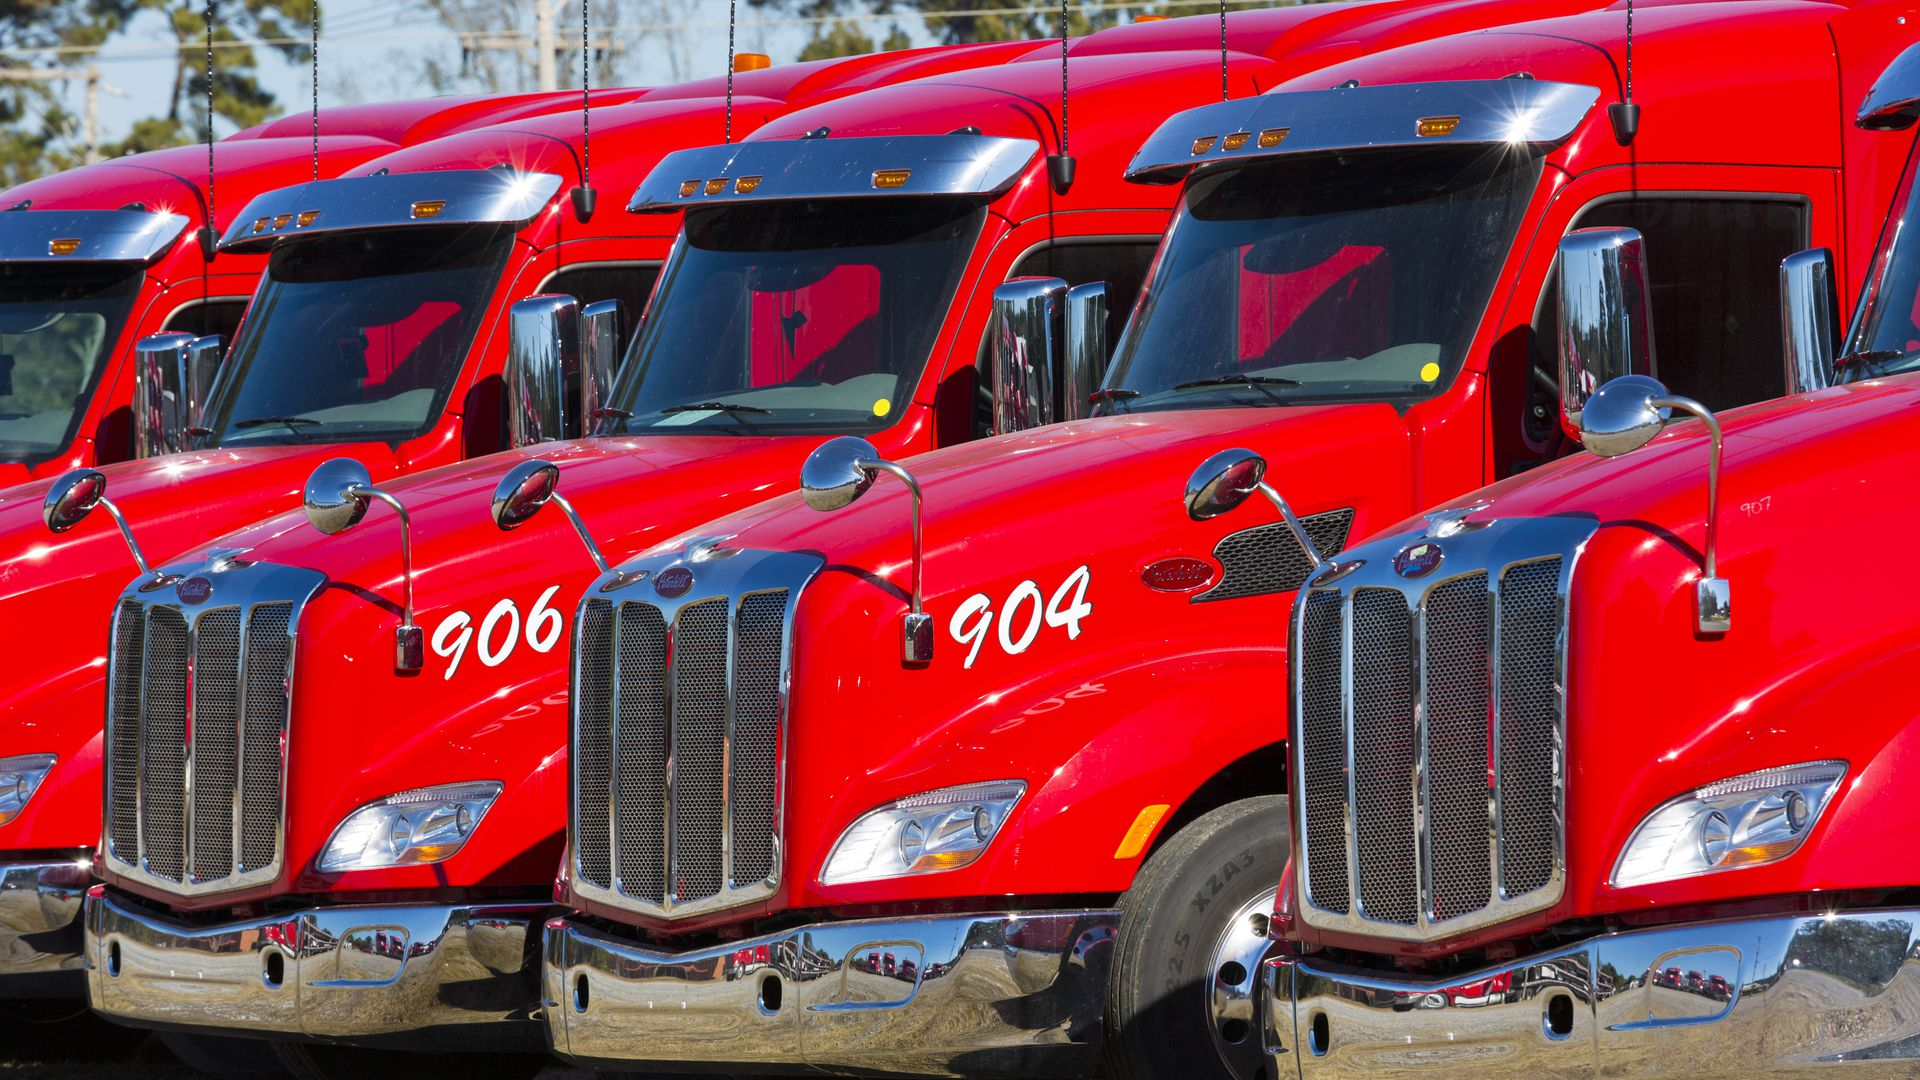 Red engines and cabs of big trucks.